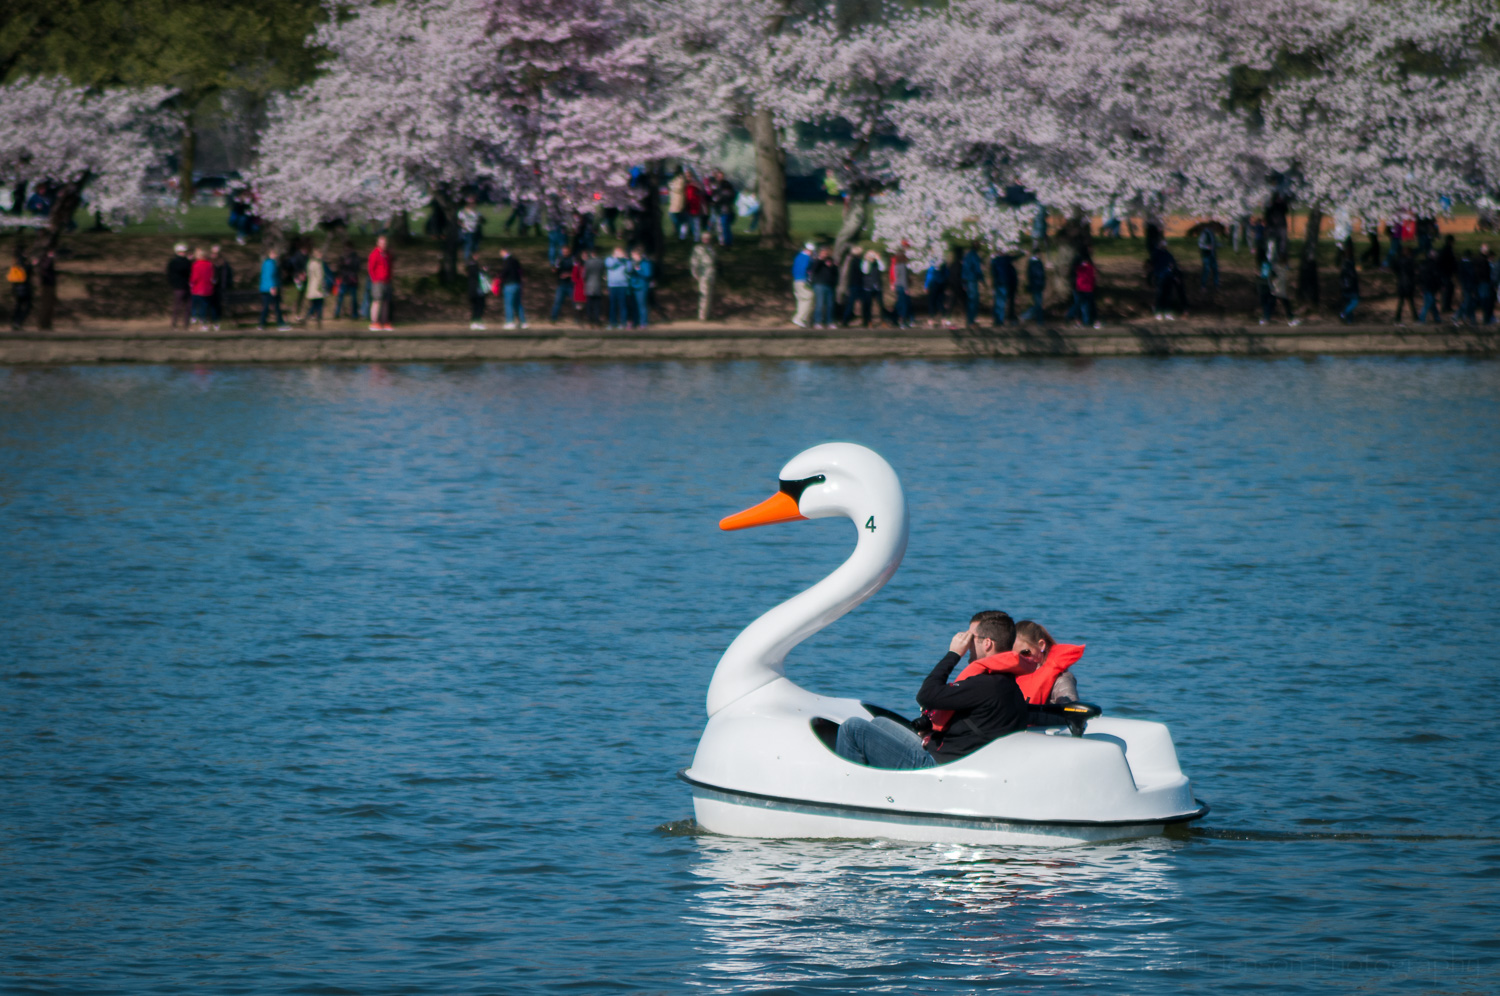 Swan boat in the tidal basin, Washington, D.C., cherry blossoms in the background